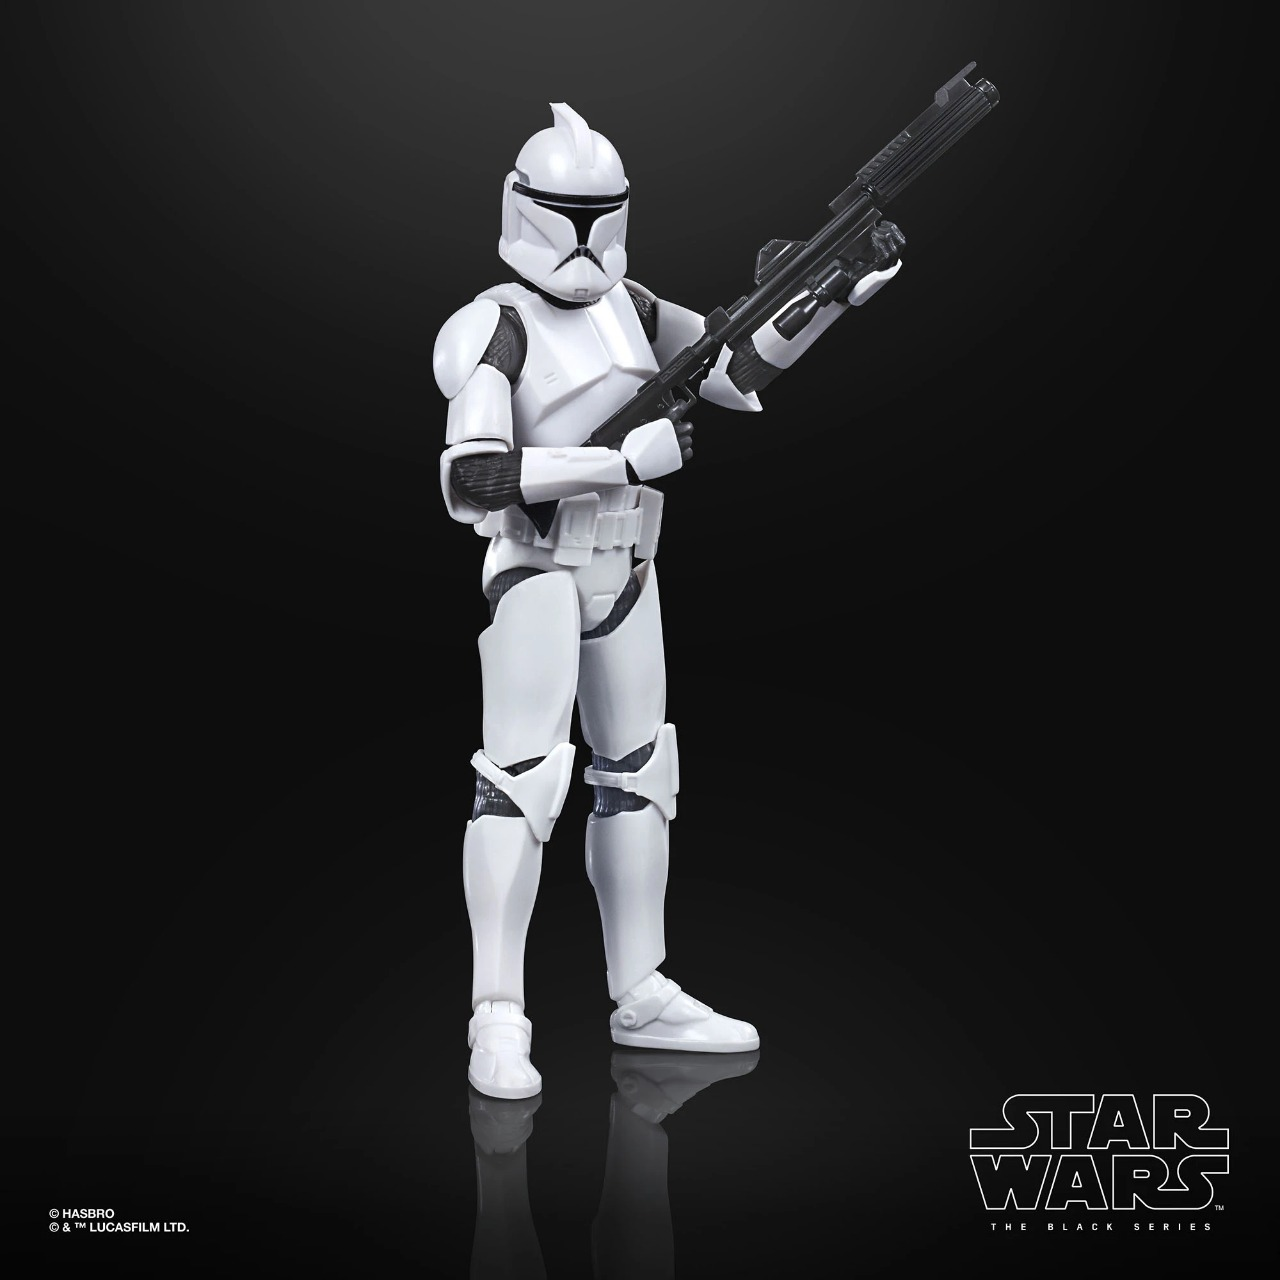 Action Figure Phase 1 Clone Trooper: Star Wars The Black Series Attack Of The Clones E9367 - Hasbro